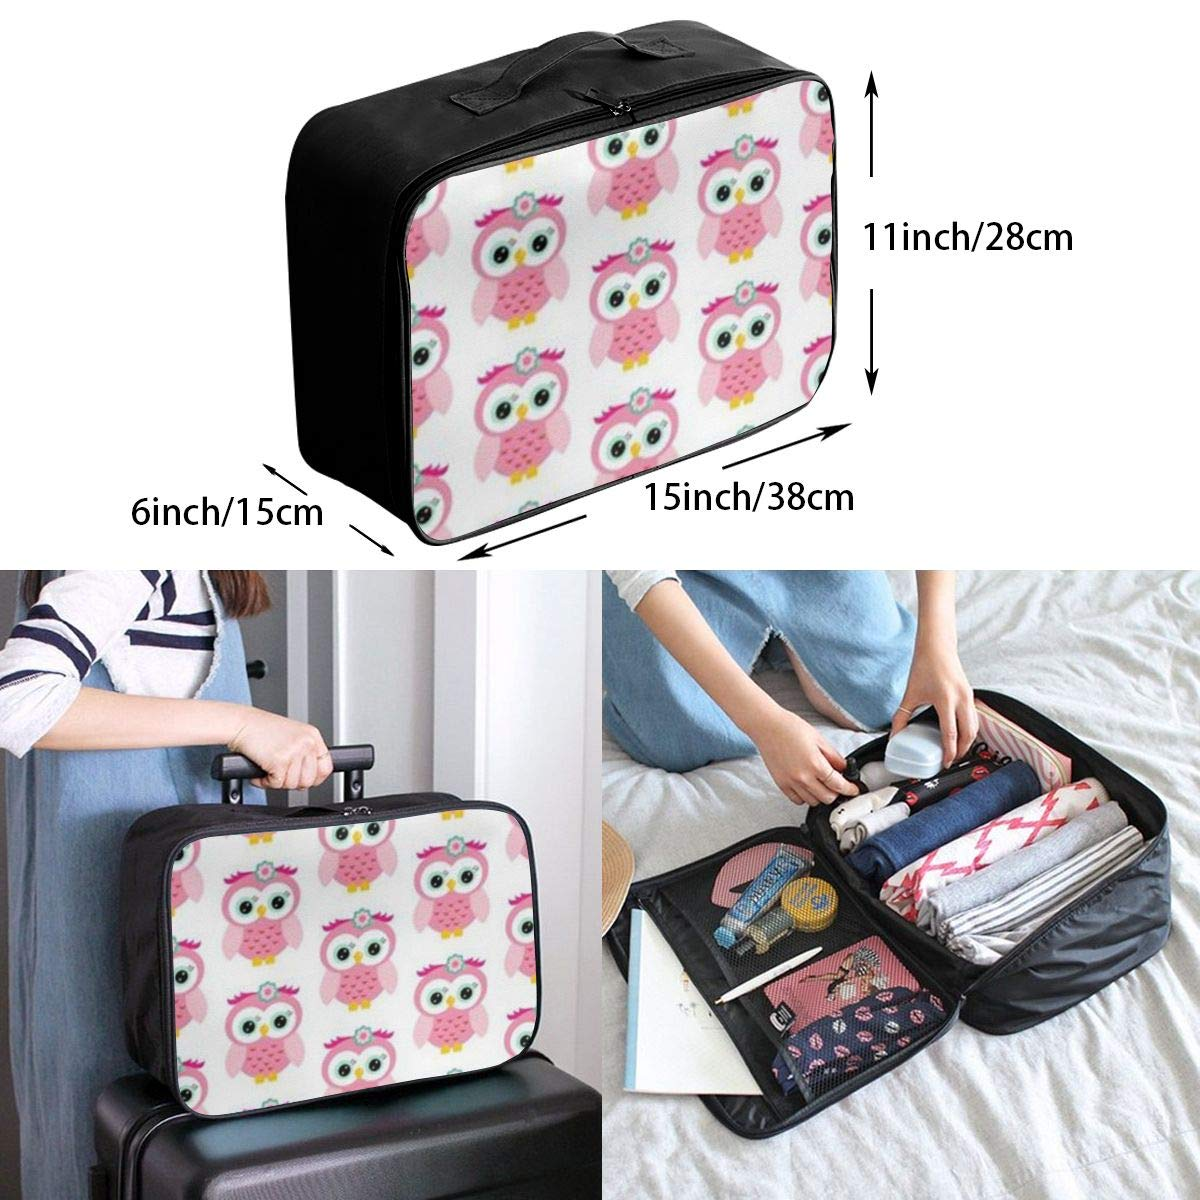 ADGAI Pink Owls Canvas Travel Weekender Bag,Fashion Custom Lightweight Large Capacity Portable Luggage Bag,Suitcase Trolley Bag